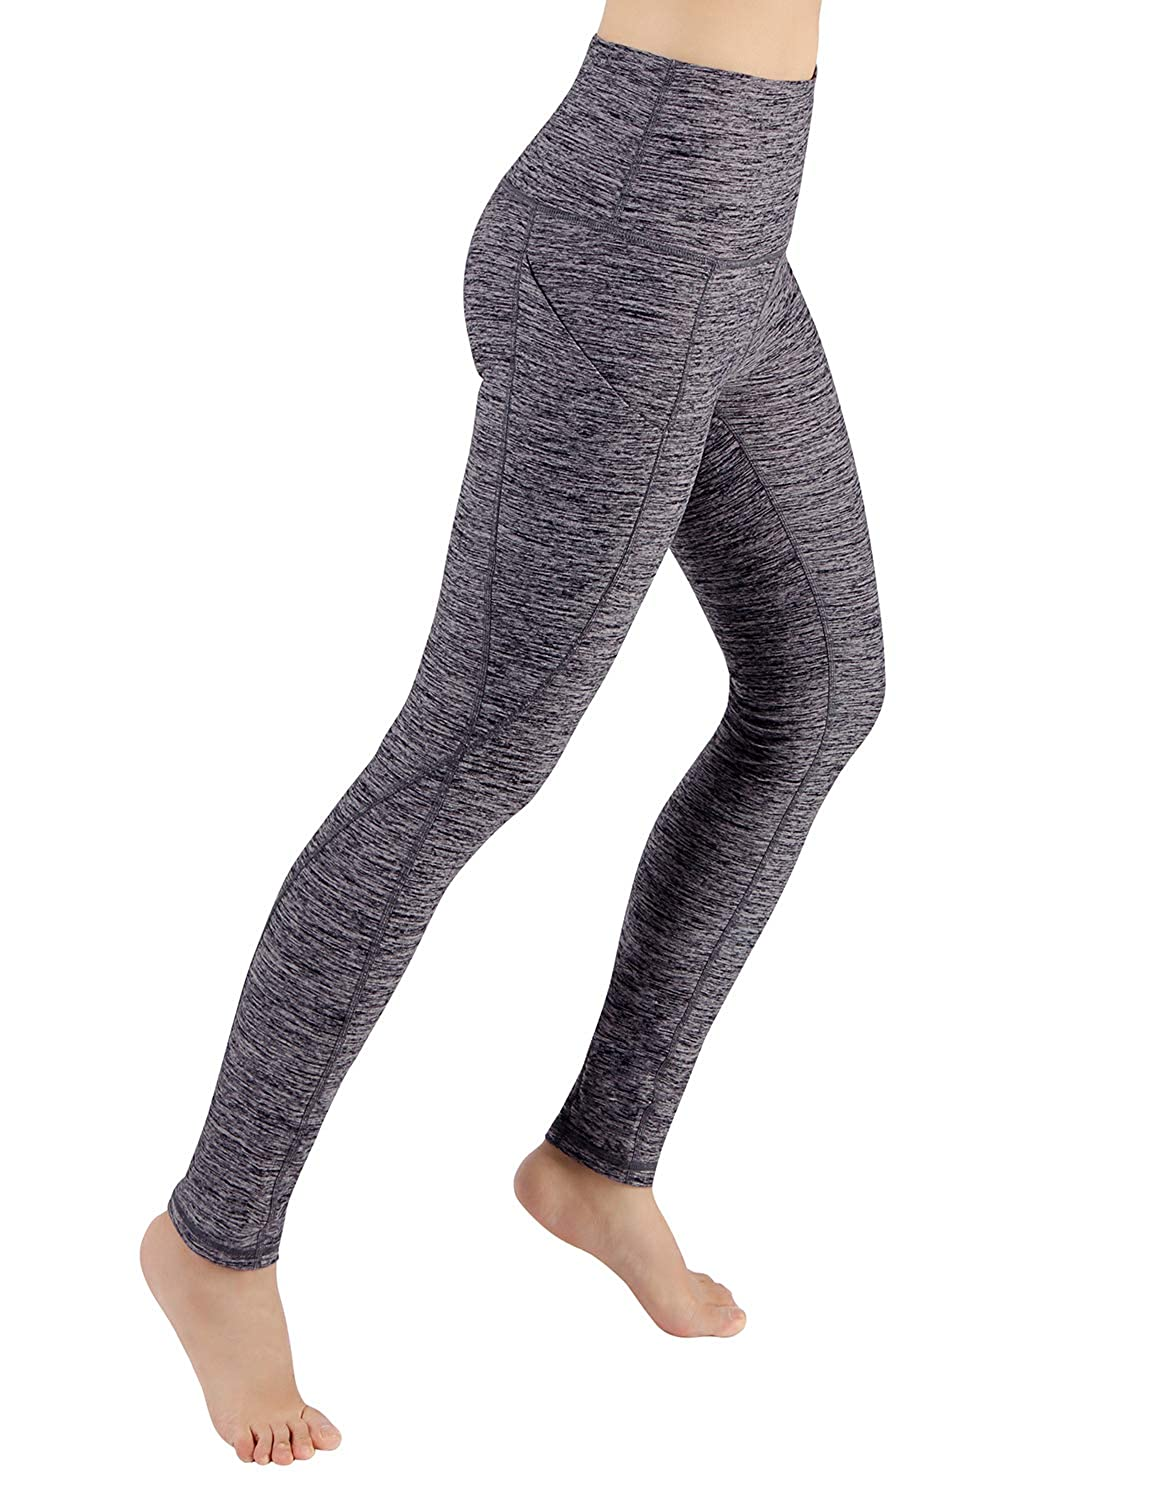 Yogapocketpants715navyheather XLarge ODODOS Power Flex Yoga Capris Pants Tummy Control Workout Running 4 Way Stretch Yoga